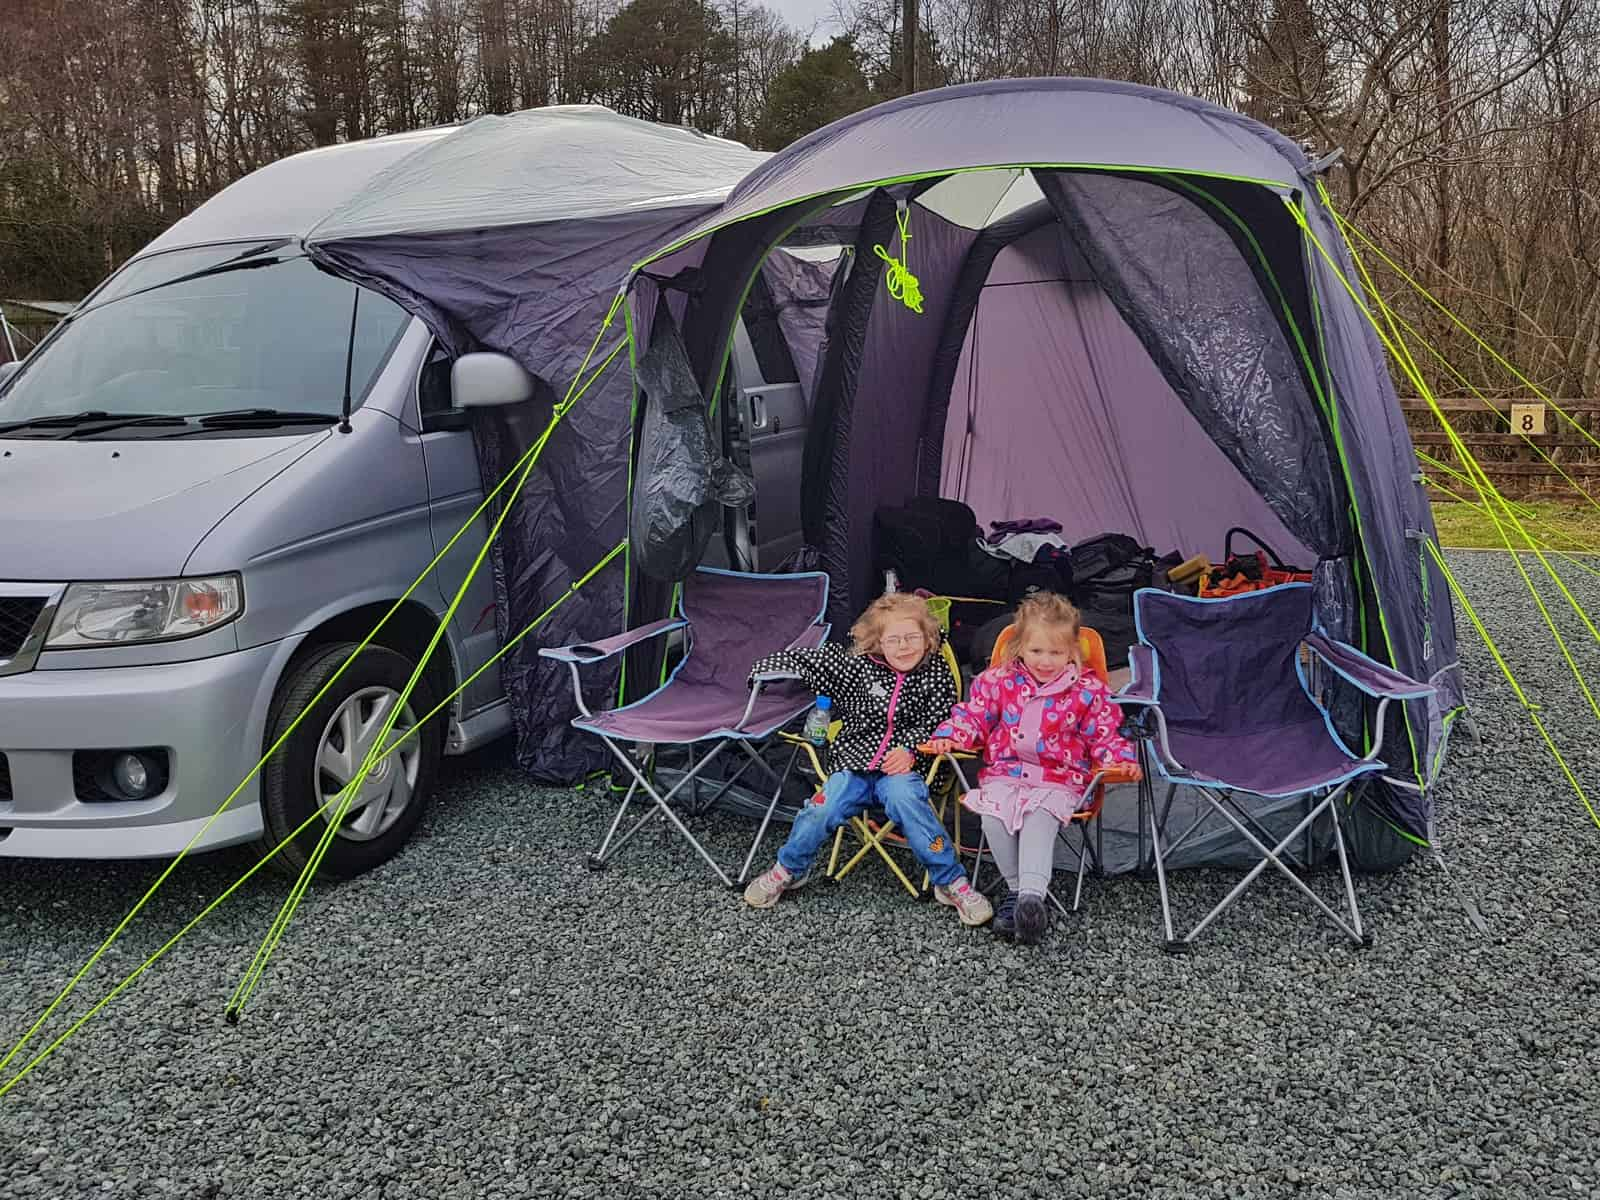 Camper van with driveaway awning attached and two little girls sitting outside on chairs